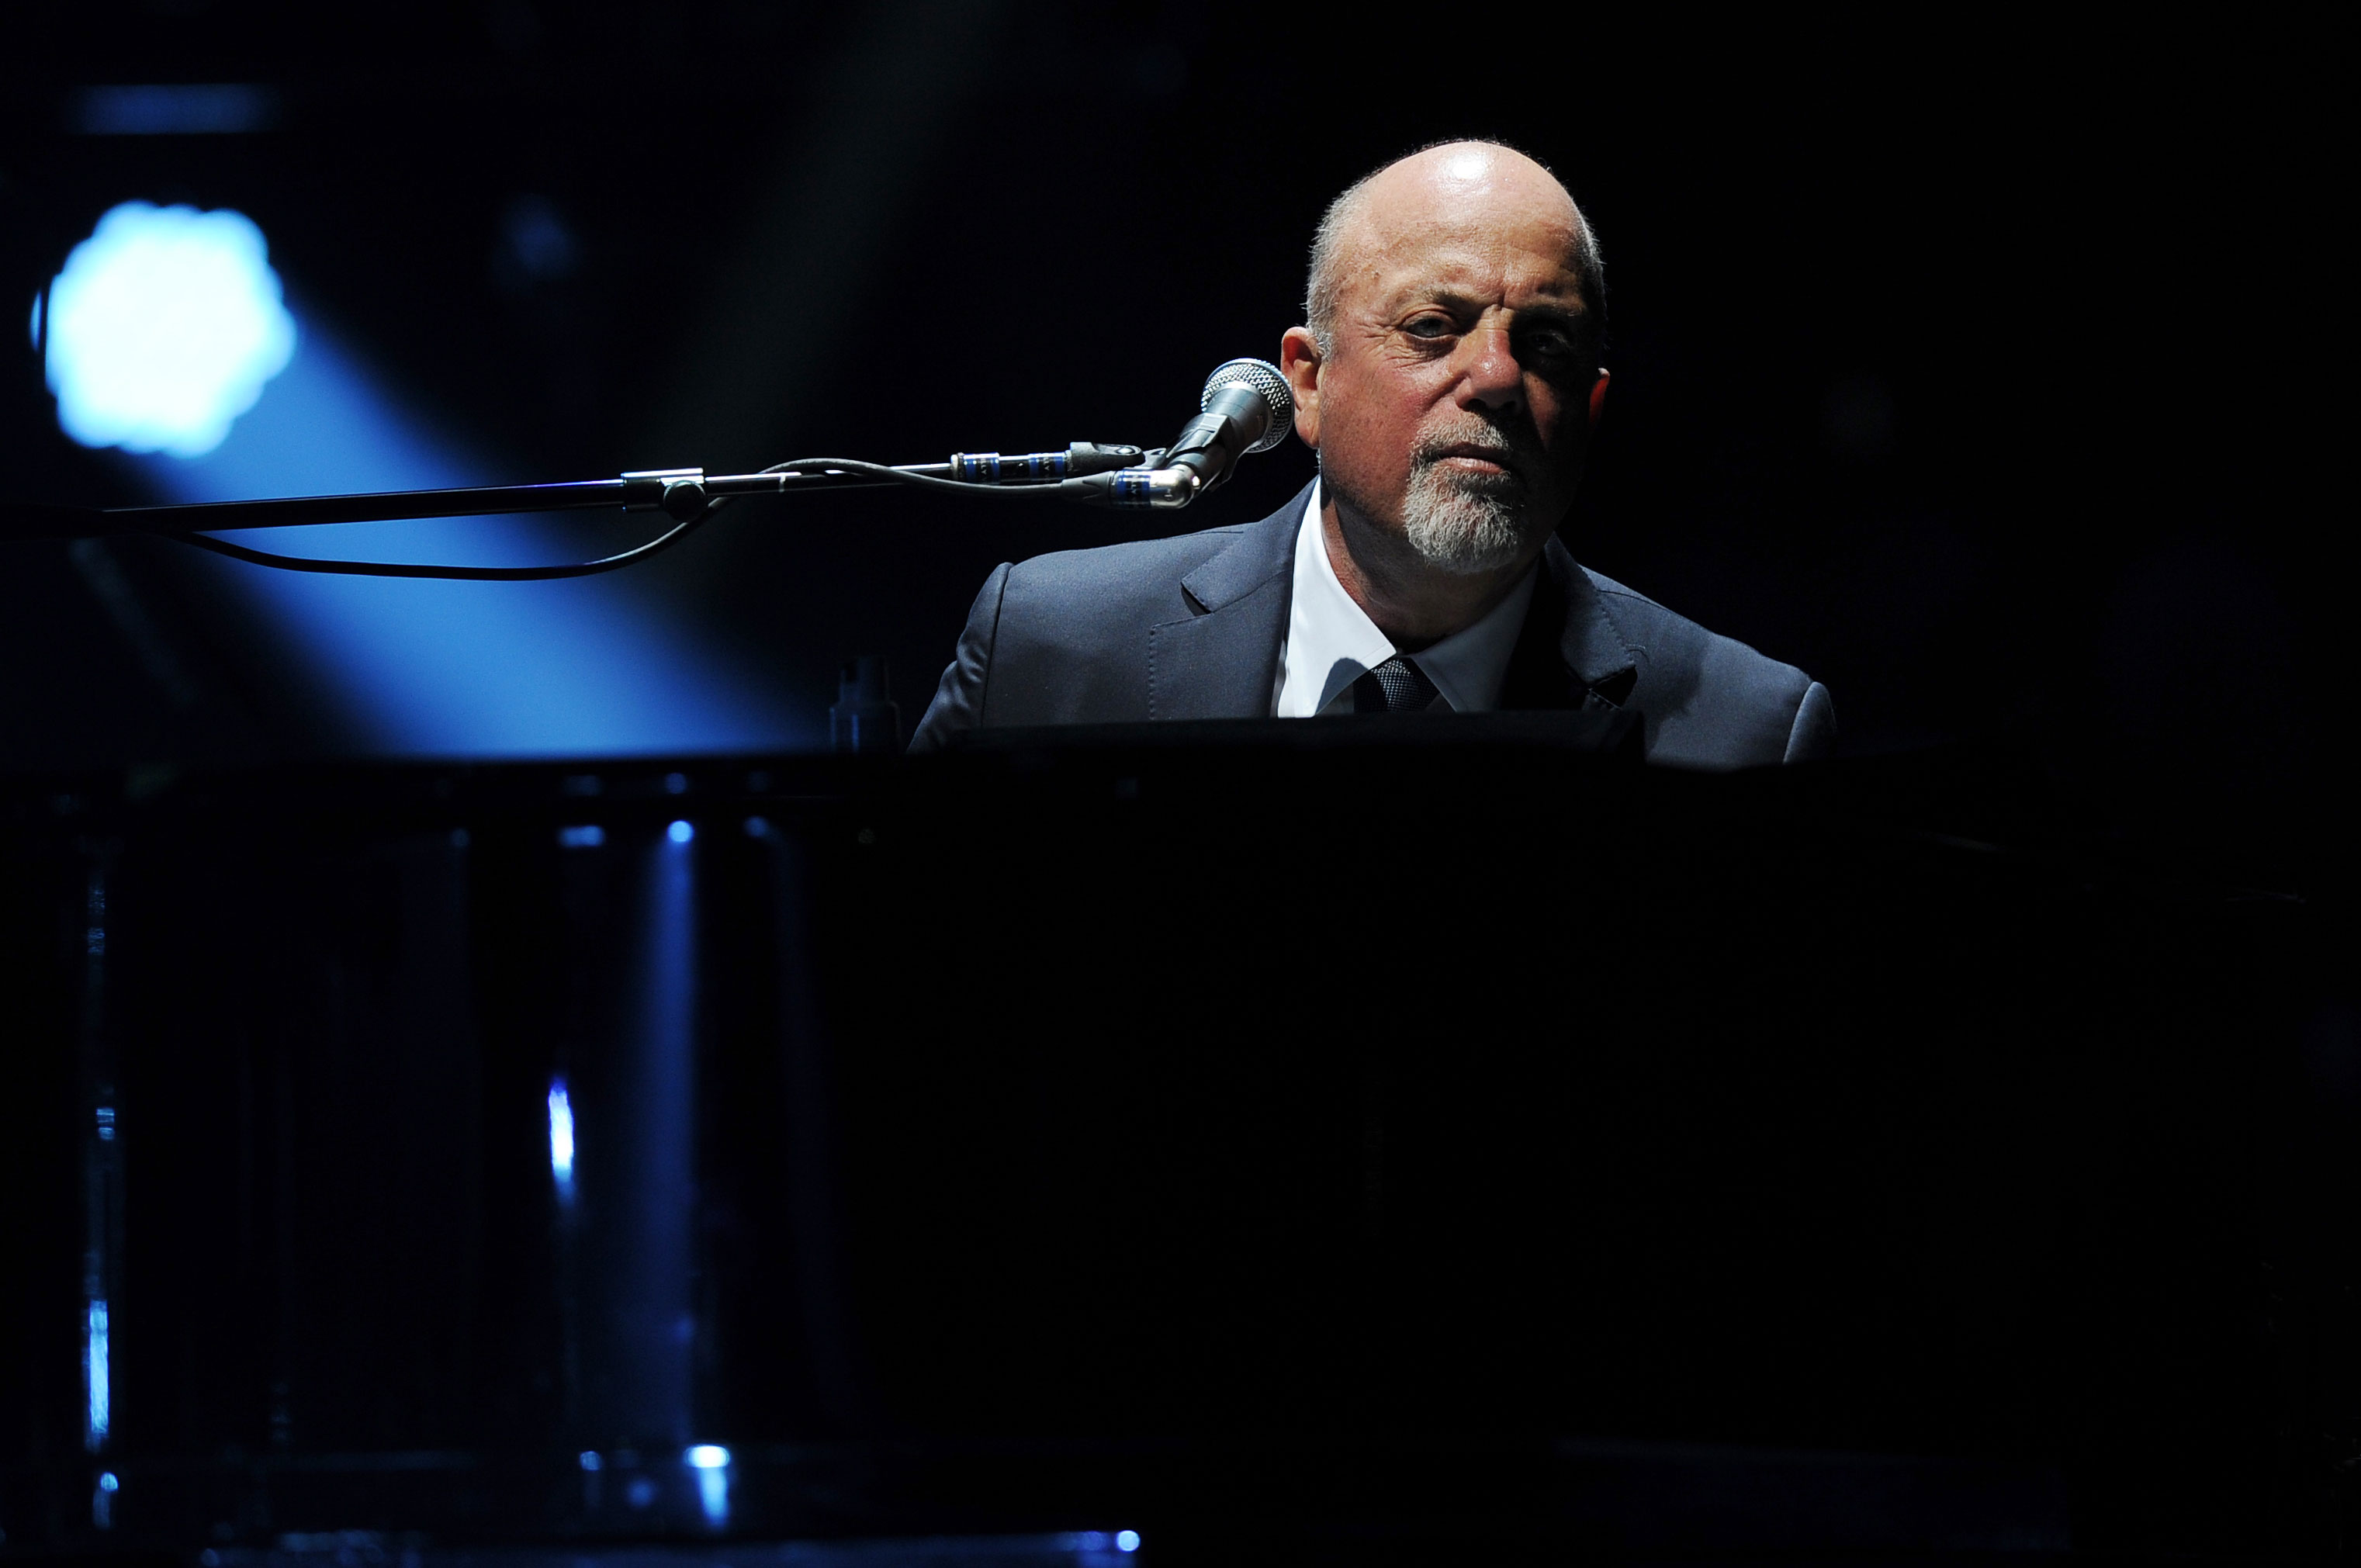 EVENTS: Colorado College is Hosting Its First Ever Scholarly Symposium Featuring Billy Joel